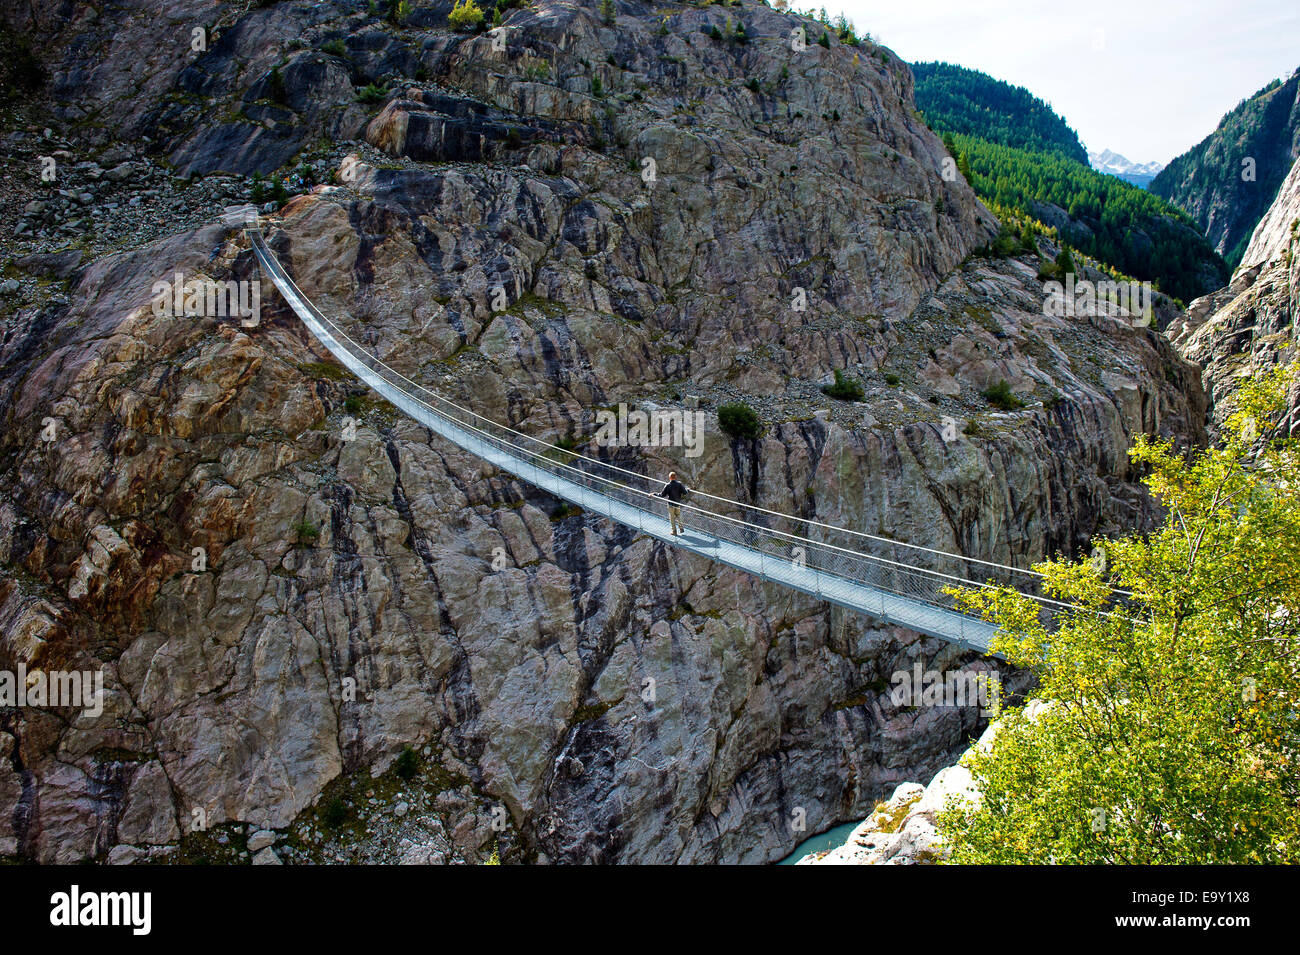 Stressed-ribbon bridge across Massa Gorge, Belalp tourism region, Canton of Valais, Switzerland - Stock Image